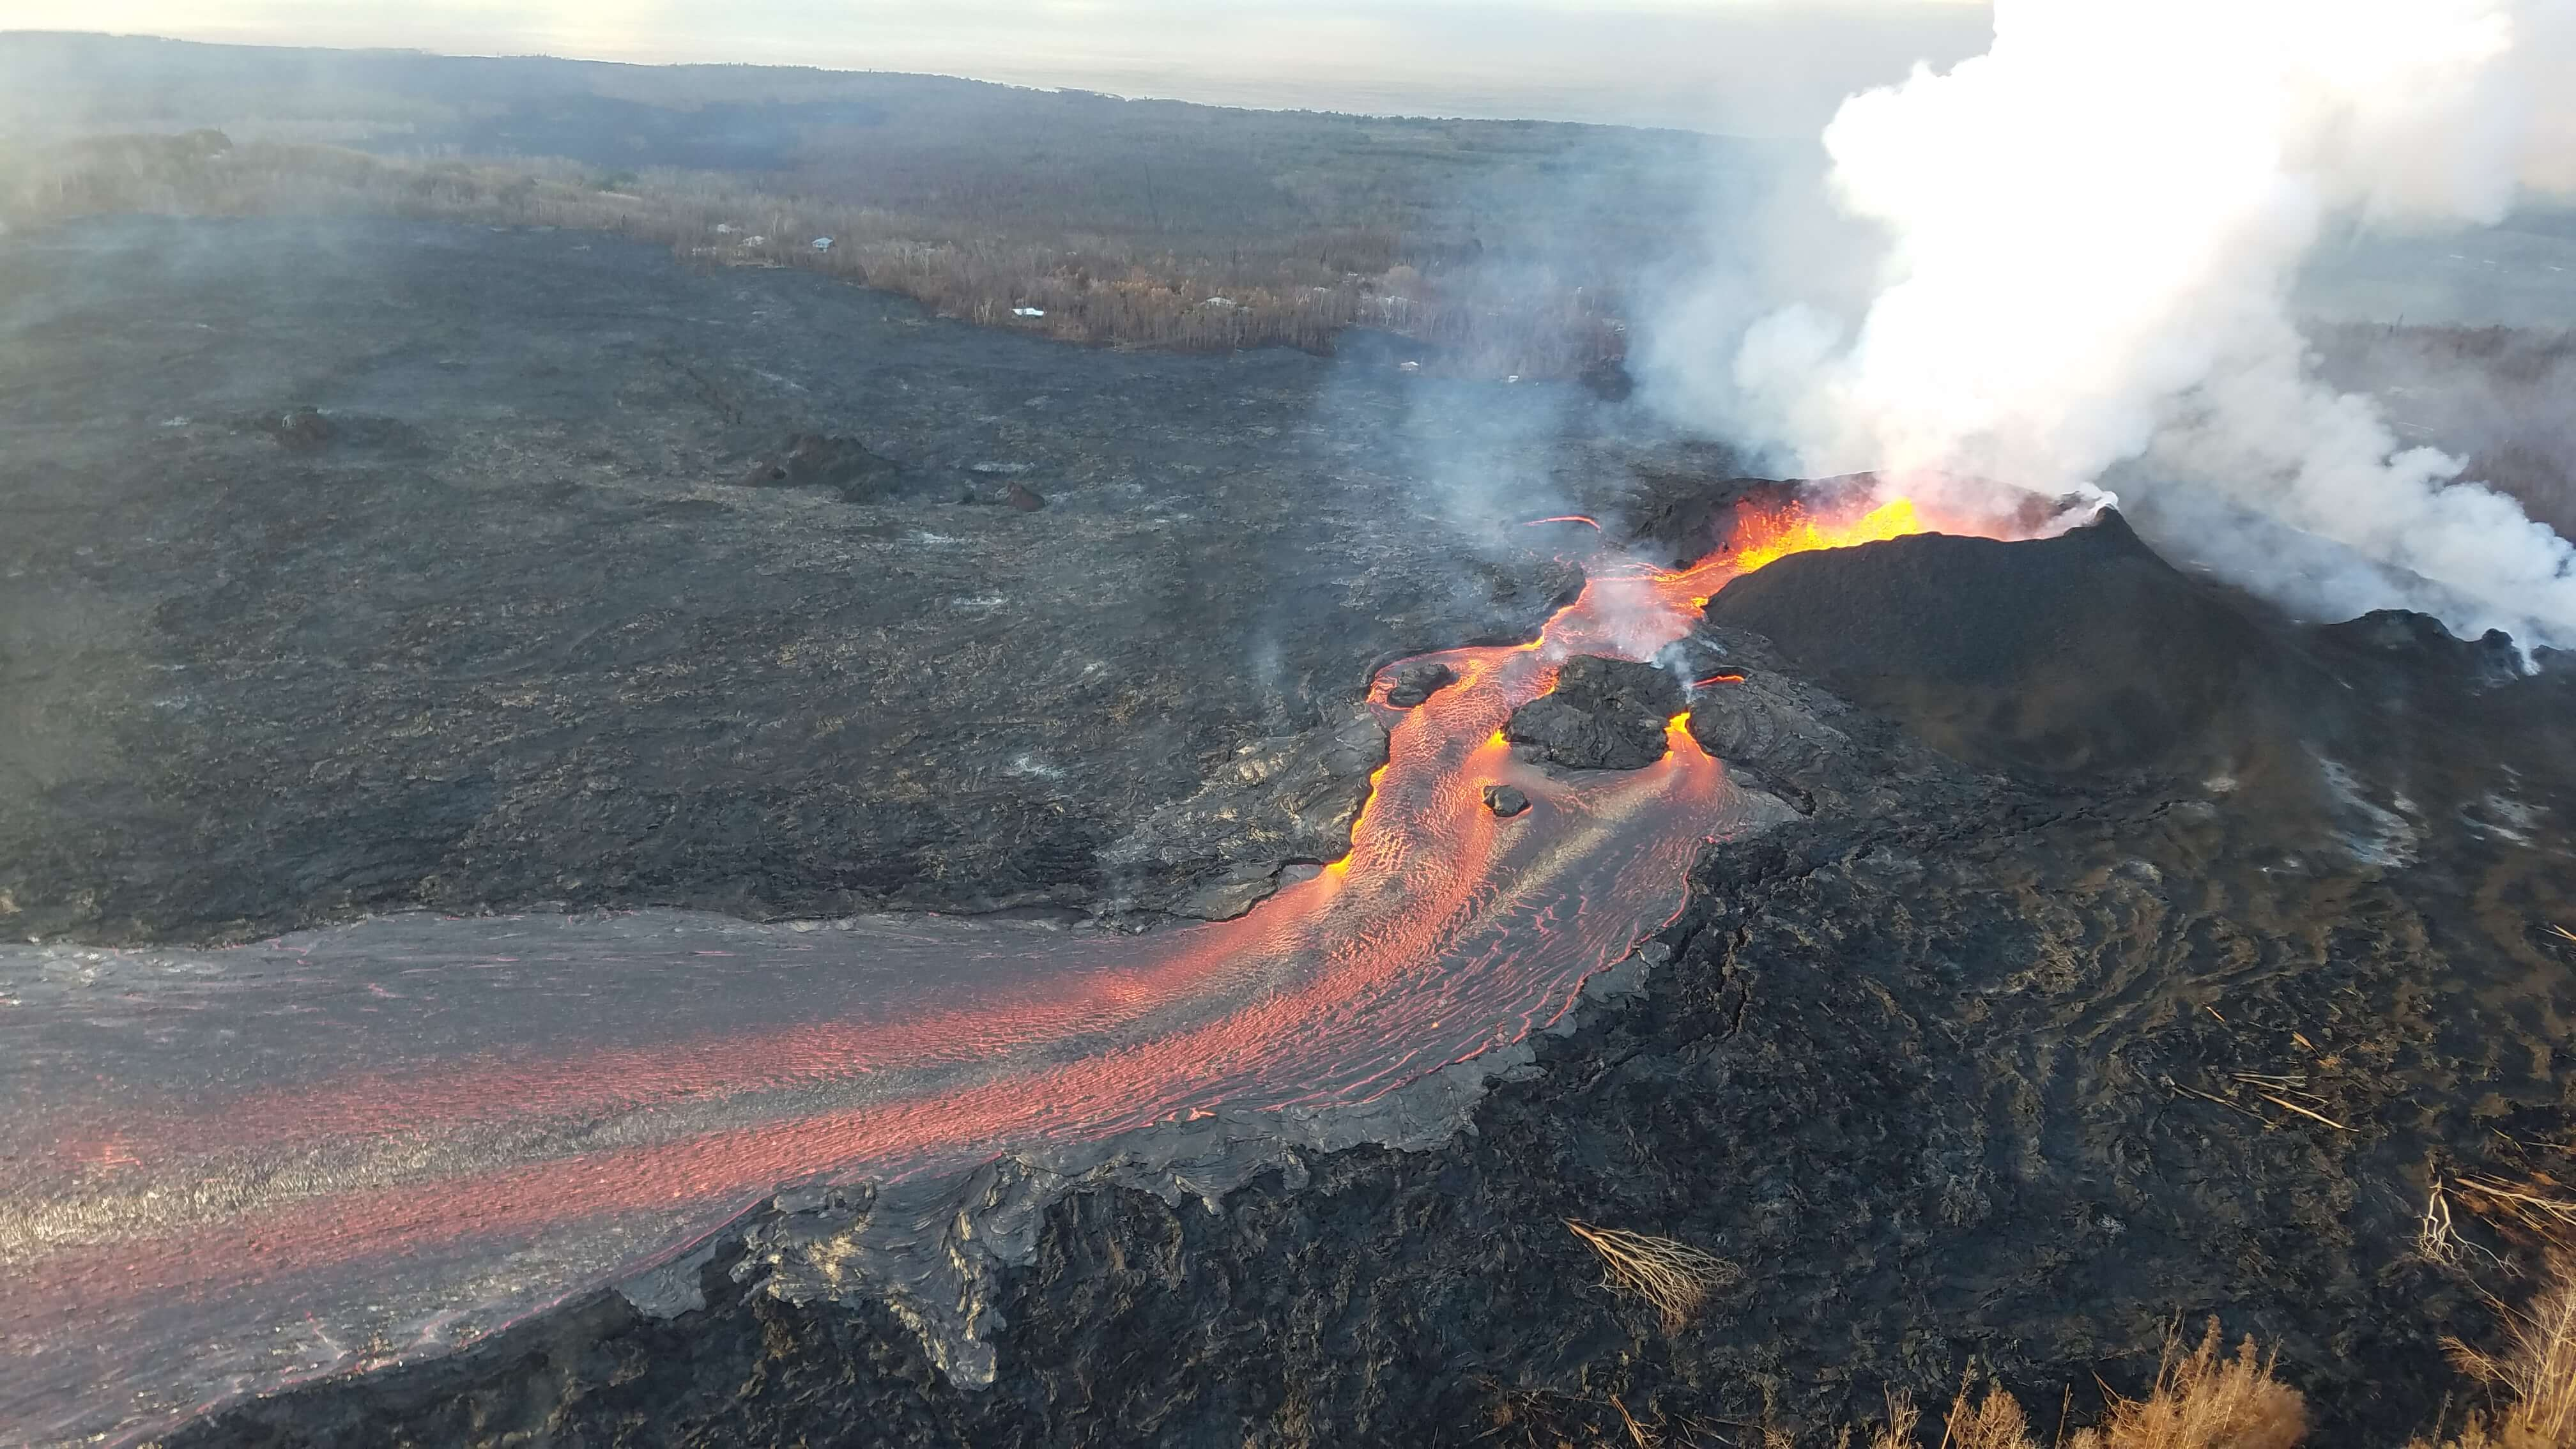 5 New Facts About The Kilauea Volcano In Hawaii